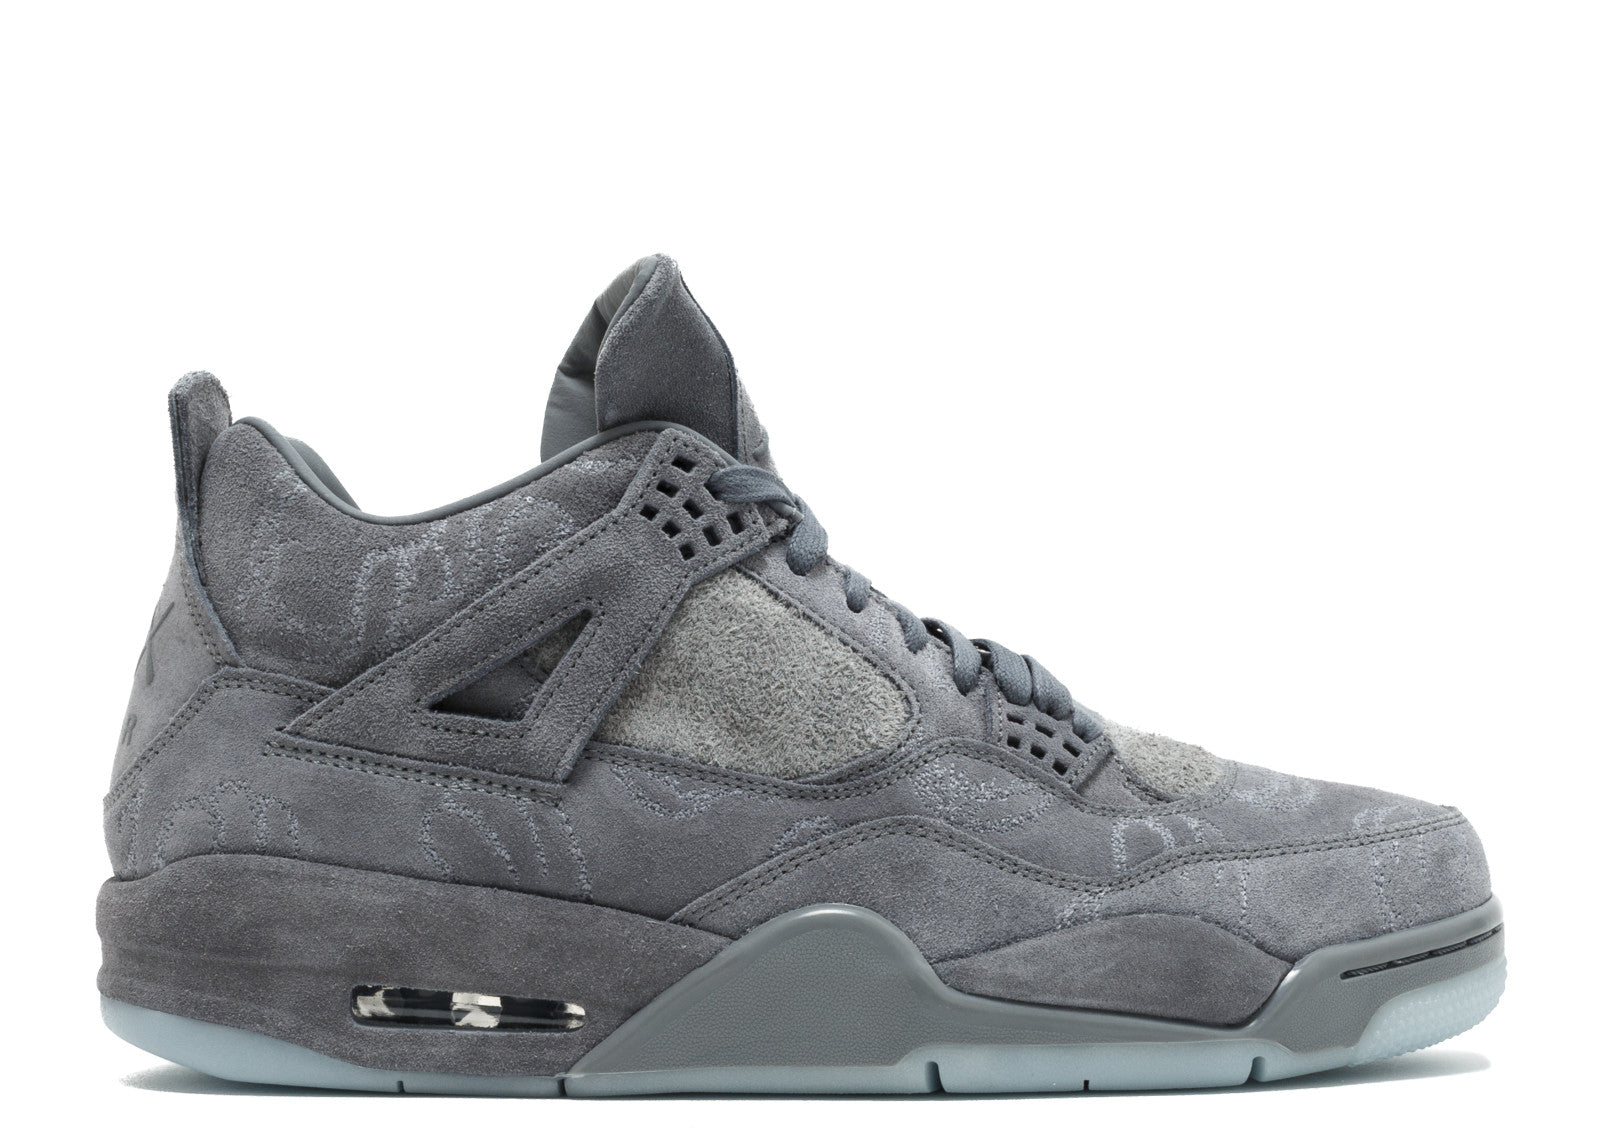 KAWS X Nike Air Jordan 4 Retro 'Cool Grey'